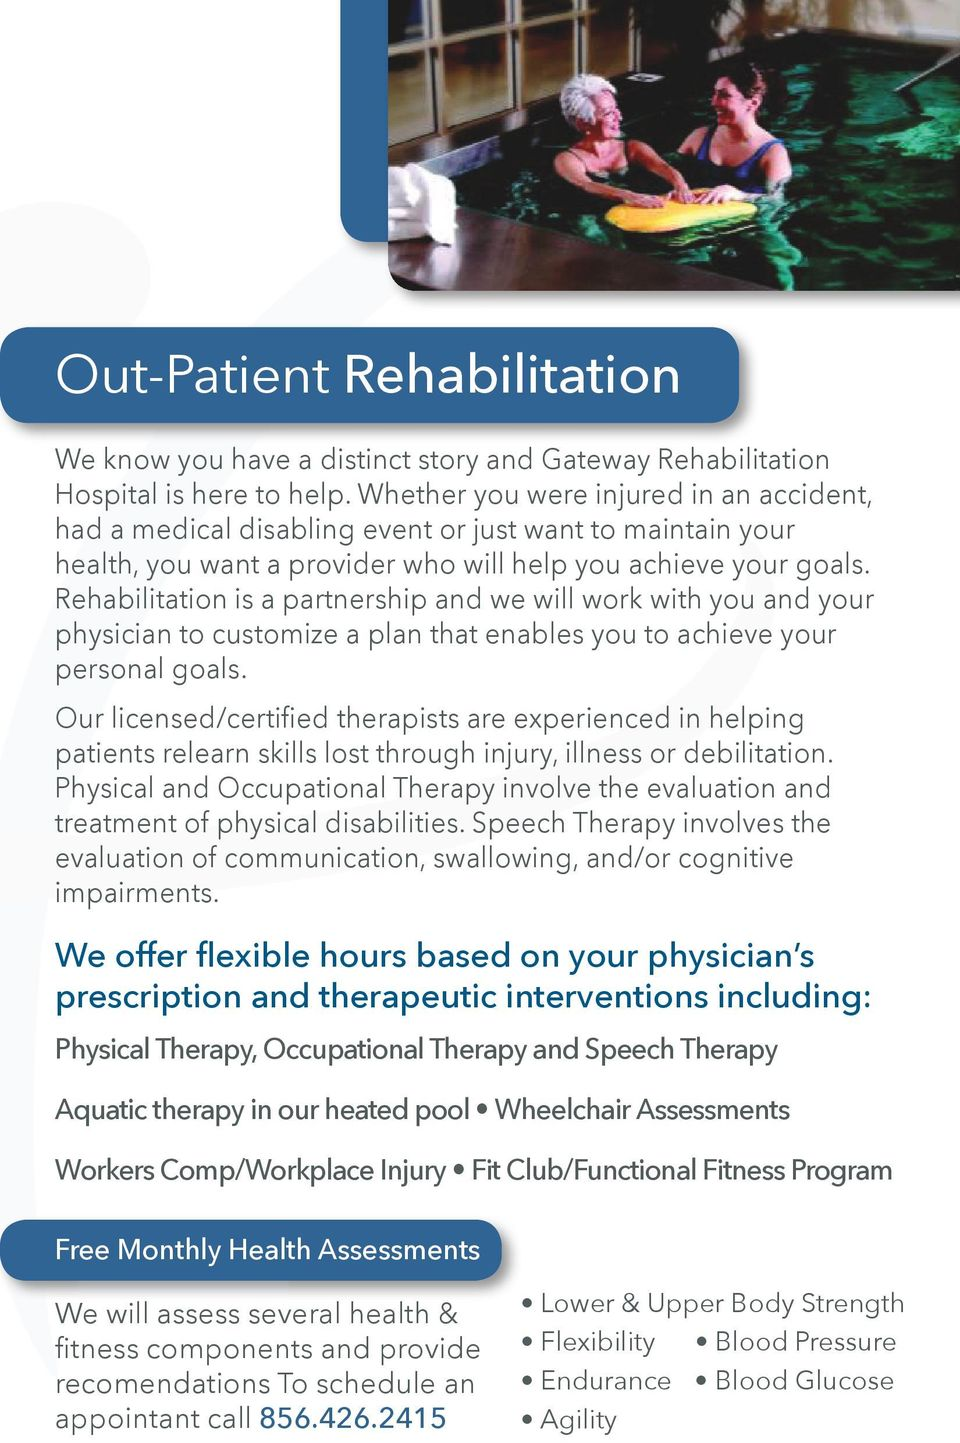 Rehabilitation is a partnership and we will work with you and your physician to customize a plan that enables you to achieve your personal goals.